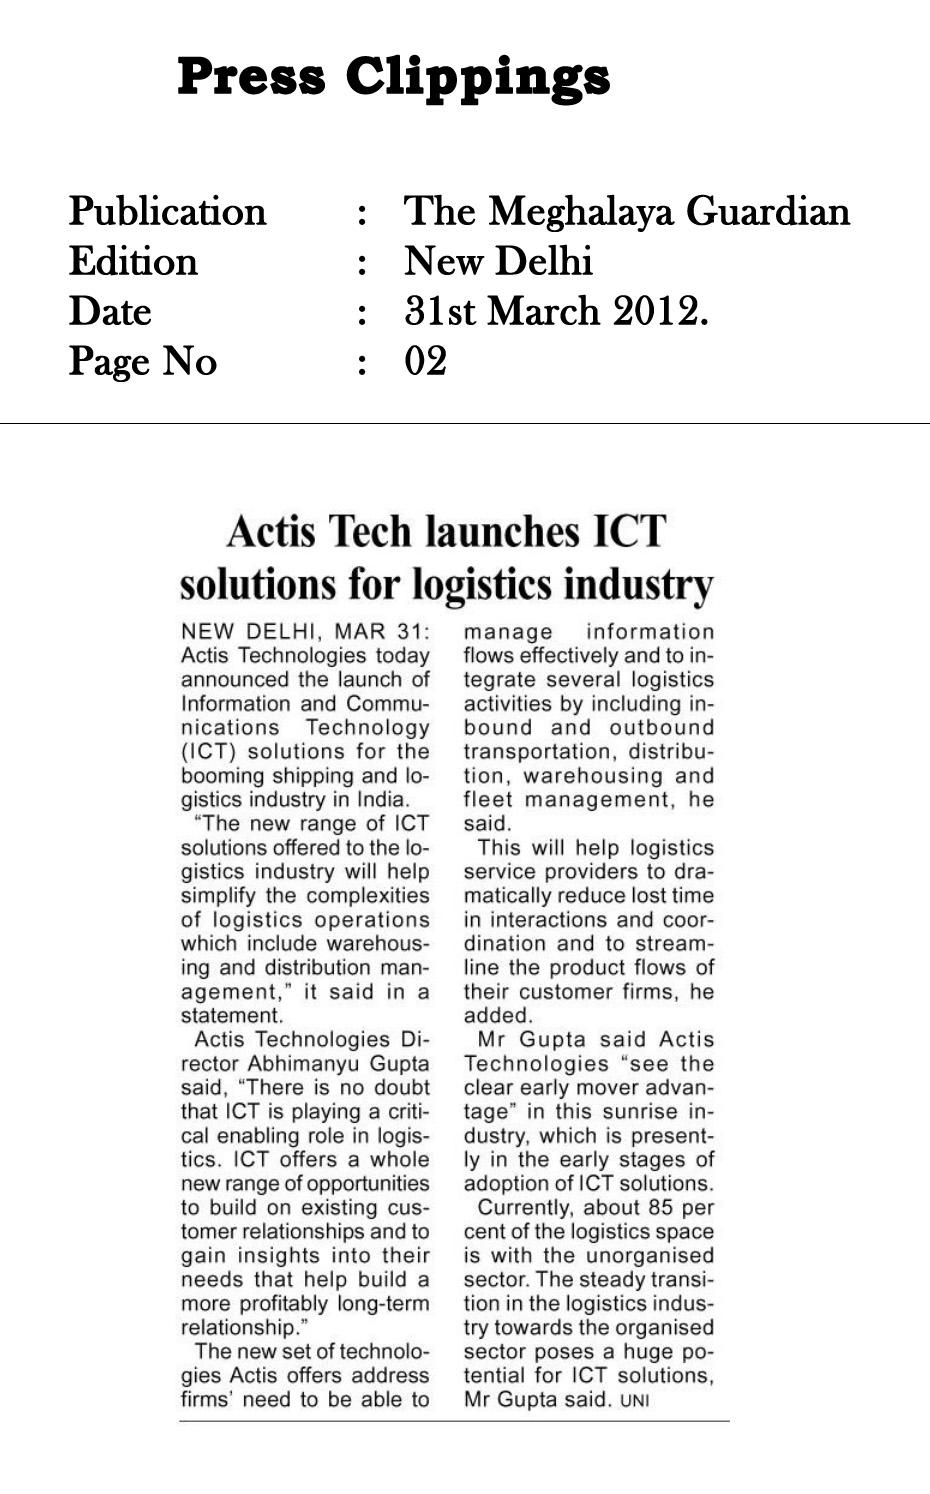 Actis Tech Launches ICT solutions for Logistics Industry - The Meghalaya Guardian